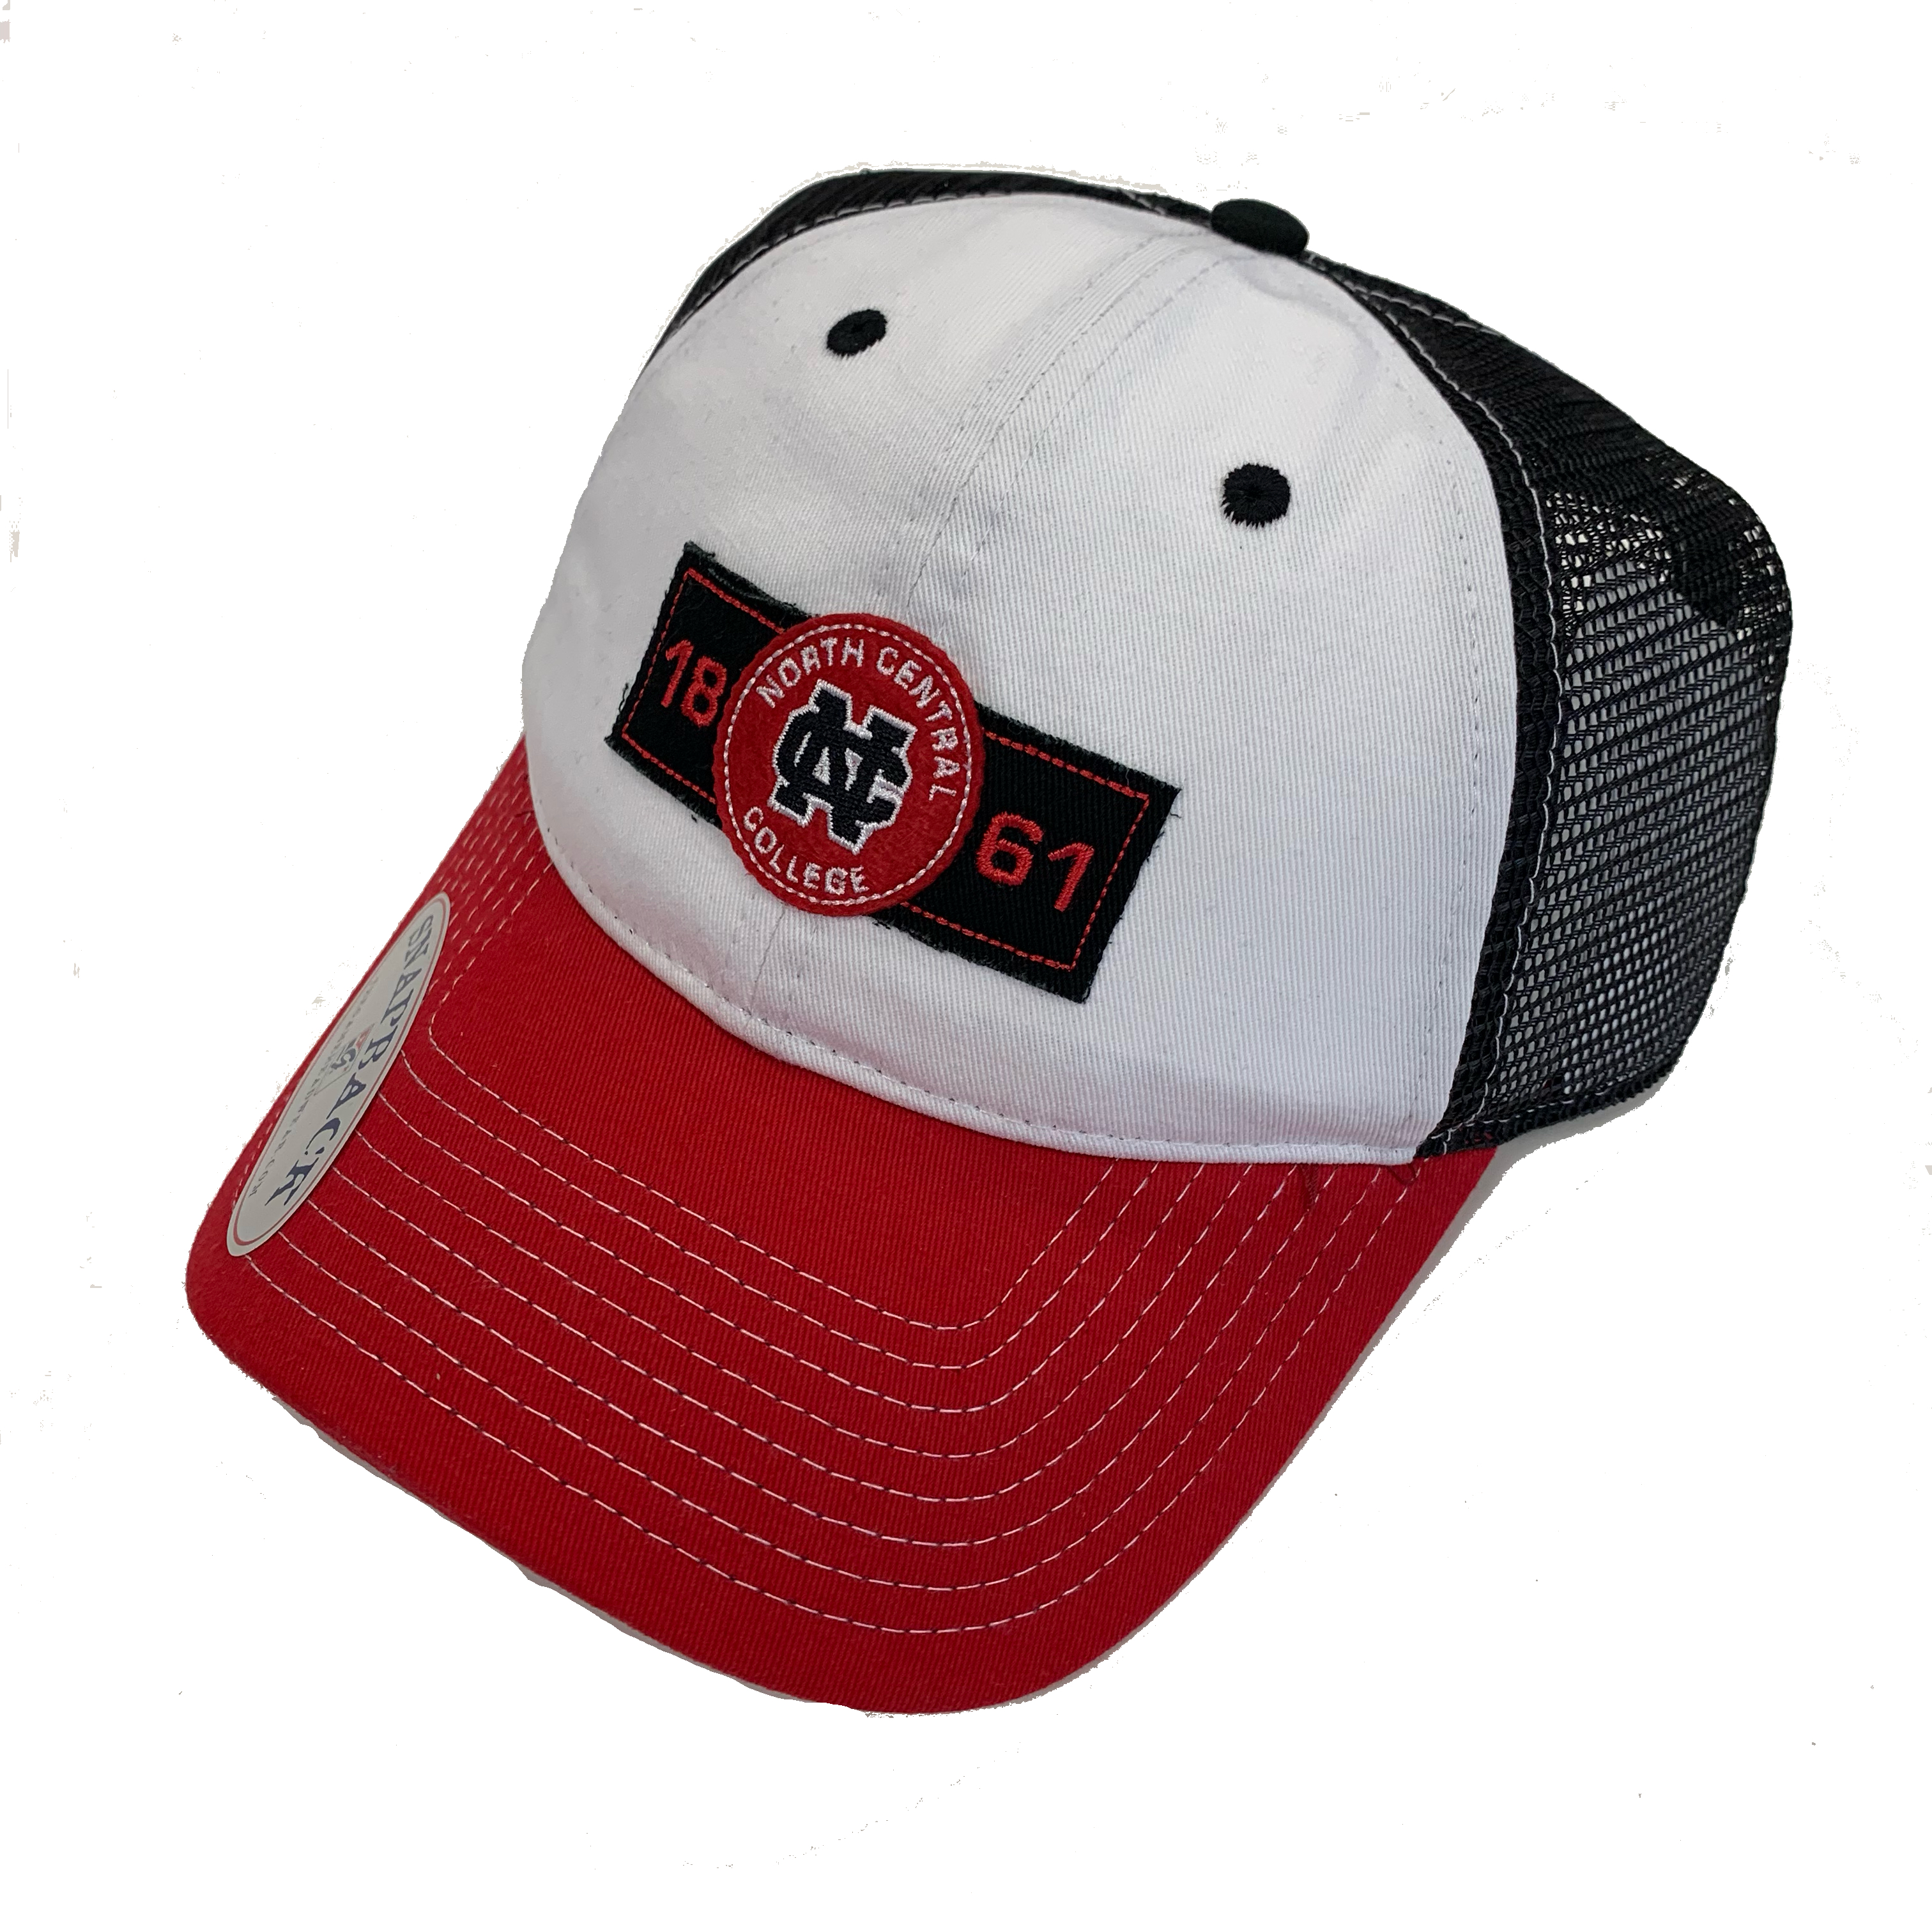 Image for the Trucker Mesh Hat by The Game product